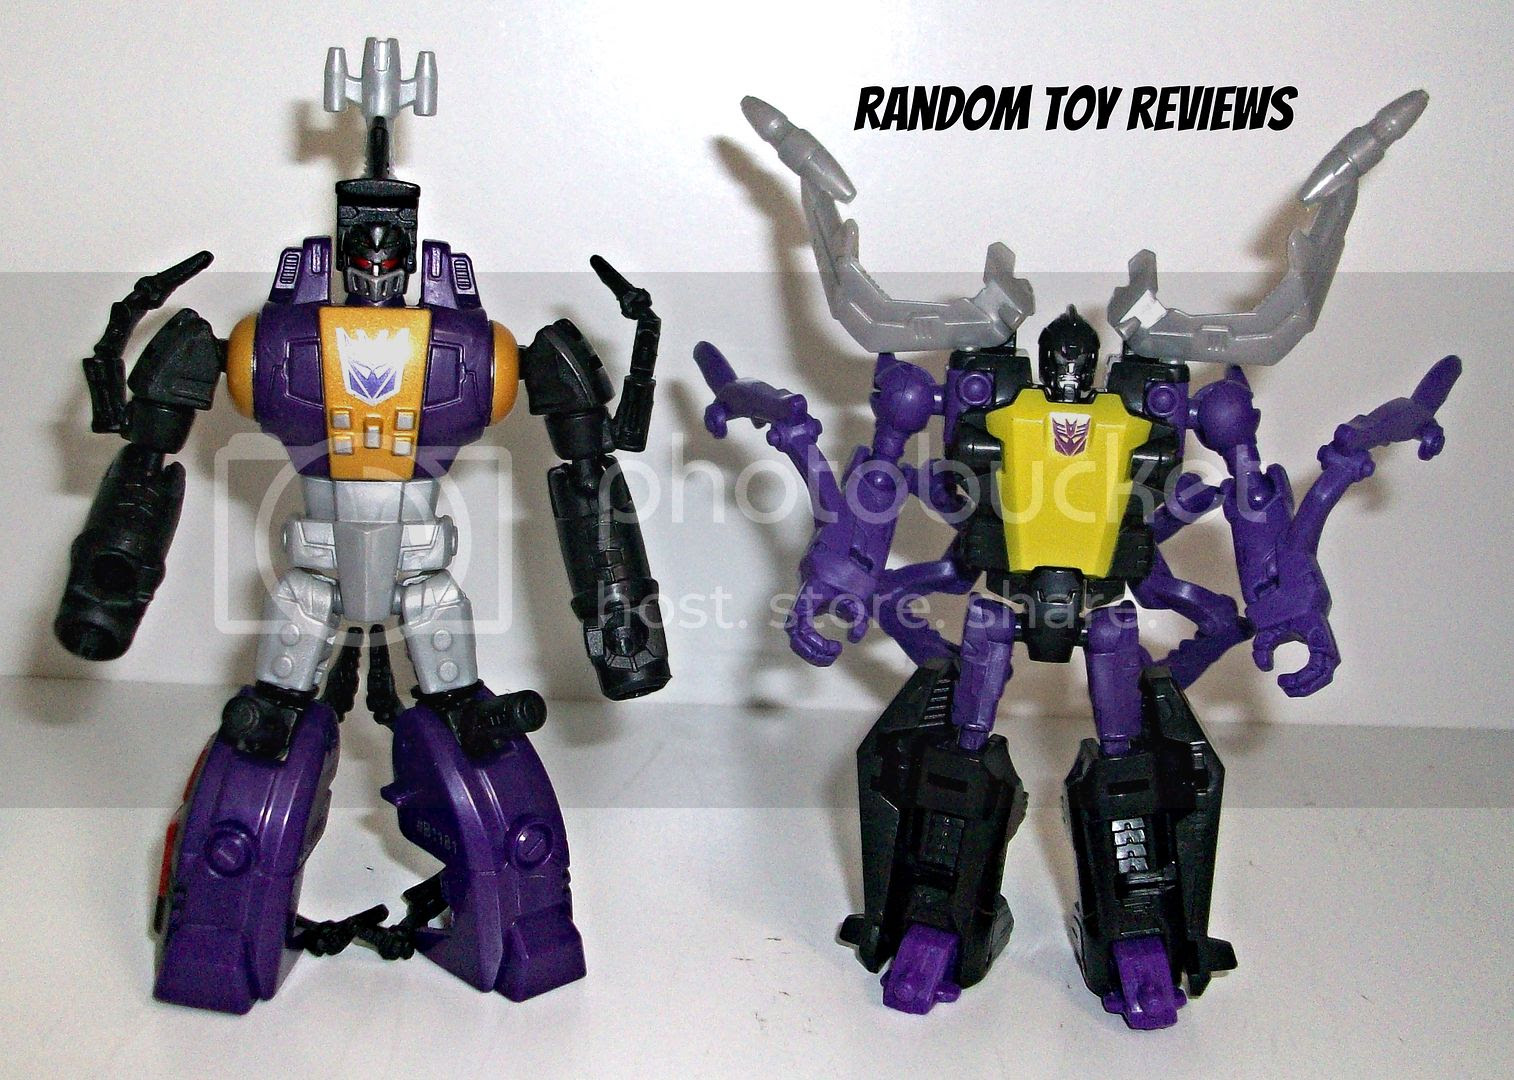 Combiner Wars Bombshell photo 010_zps9d0dc8b8.jpg